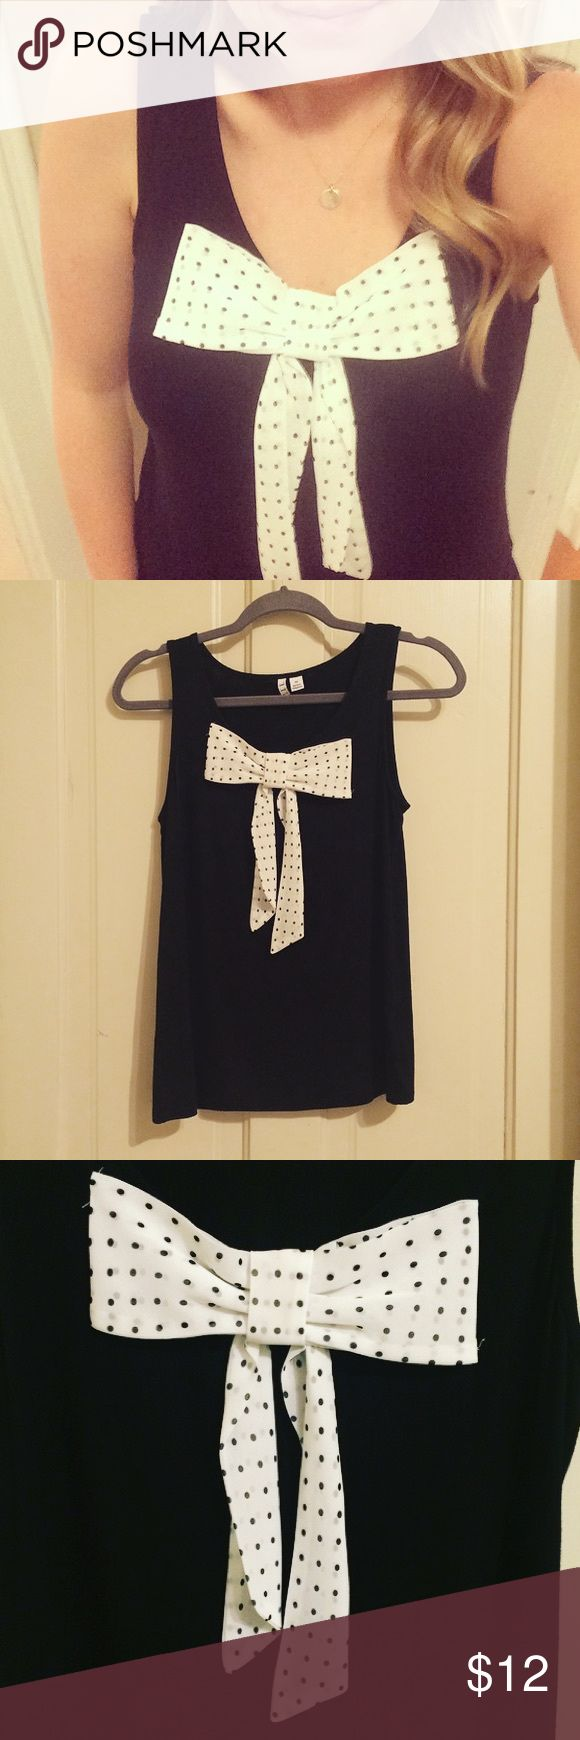 Bow top Polka dot sleeveless top! Great alone or with layers! Elle Tops Blouses